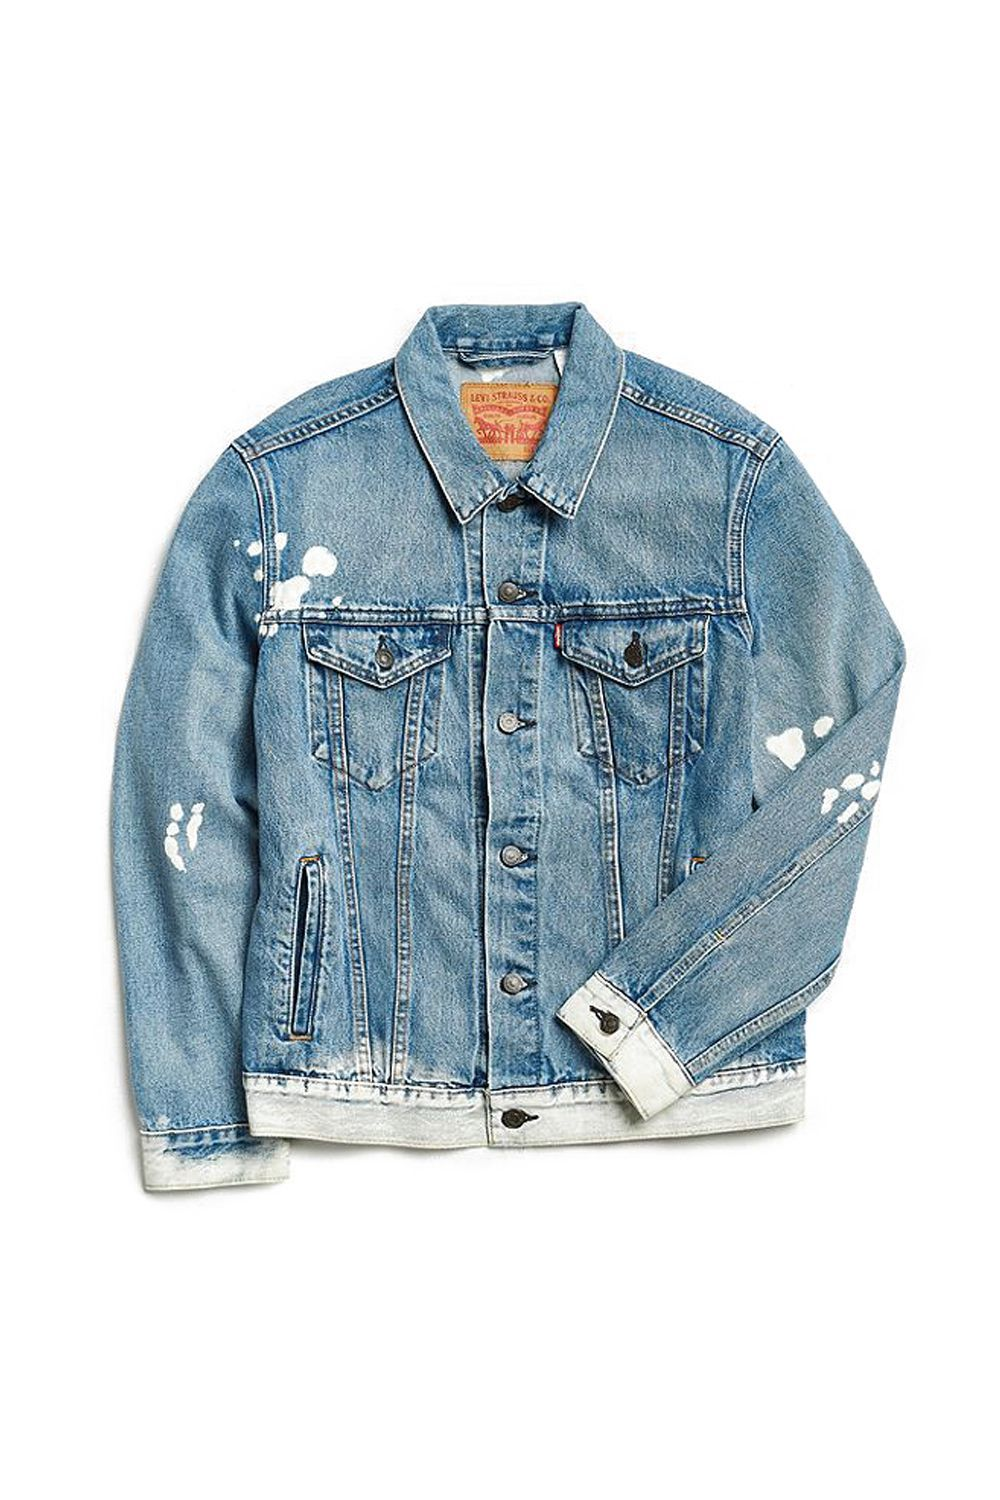 How To Make A Denim Jacket Your Year Round Uniform Denim Jacket Denim Jean Jacket Outfits Diy Denim Jacket [ 1500 x 1000 Pixel ]